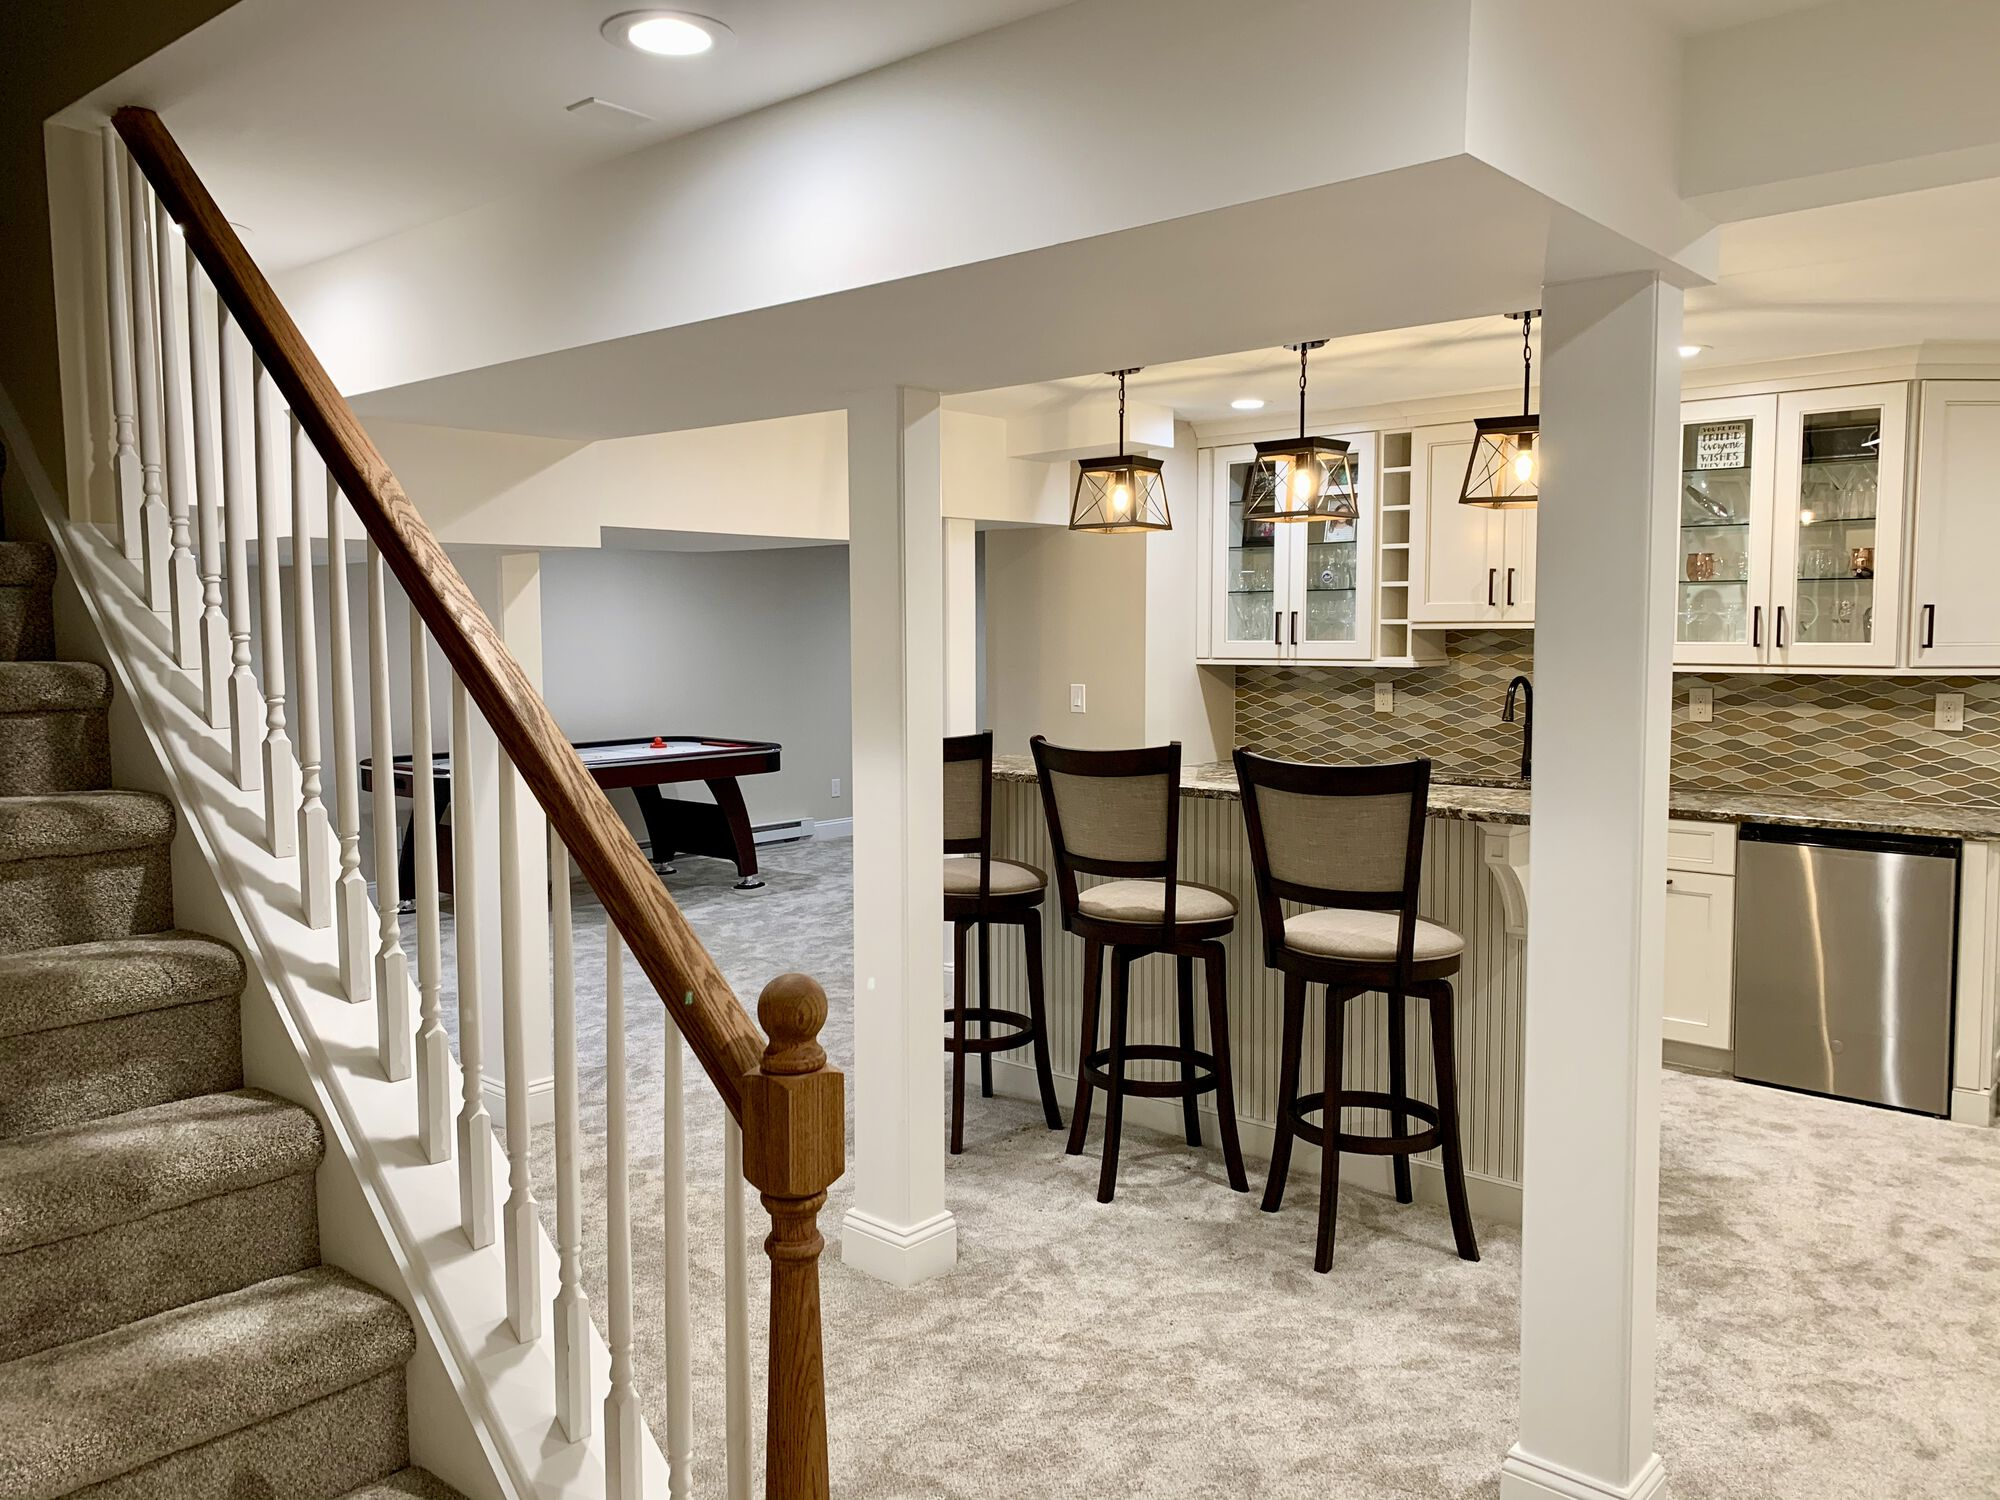 Basement with Game Area, Wet Bar, Bathroom and Laundry in Hillsborough, Somerset NJ